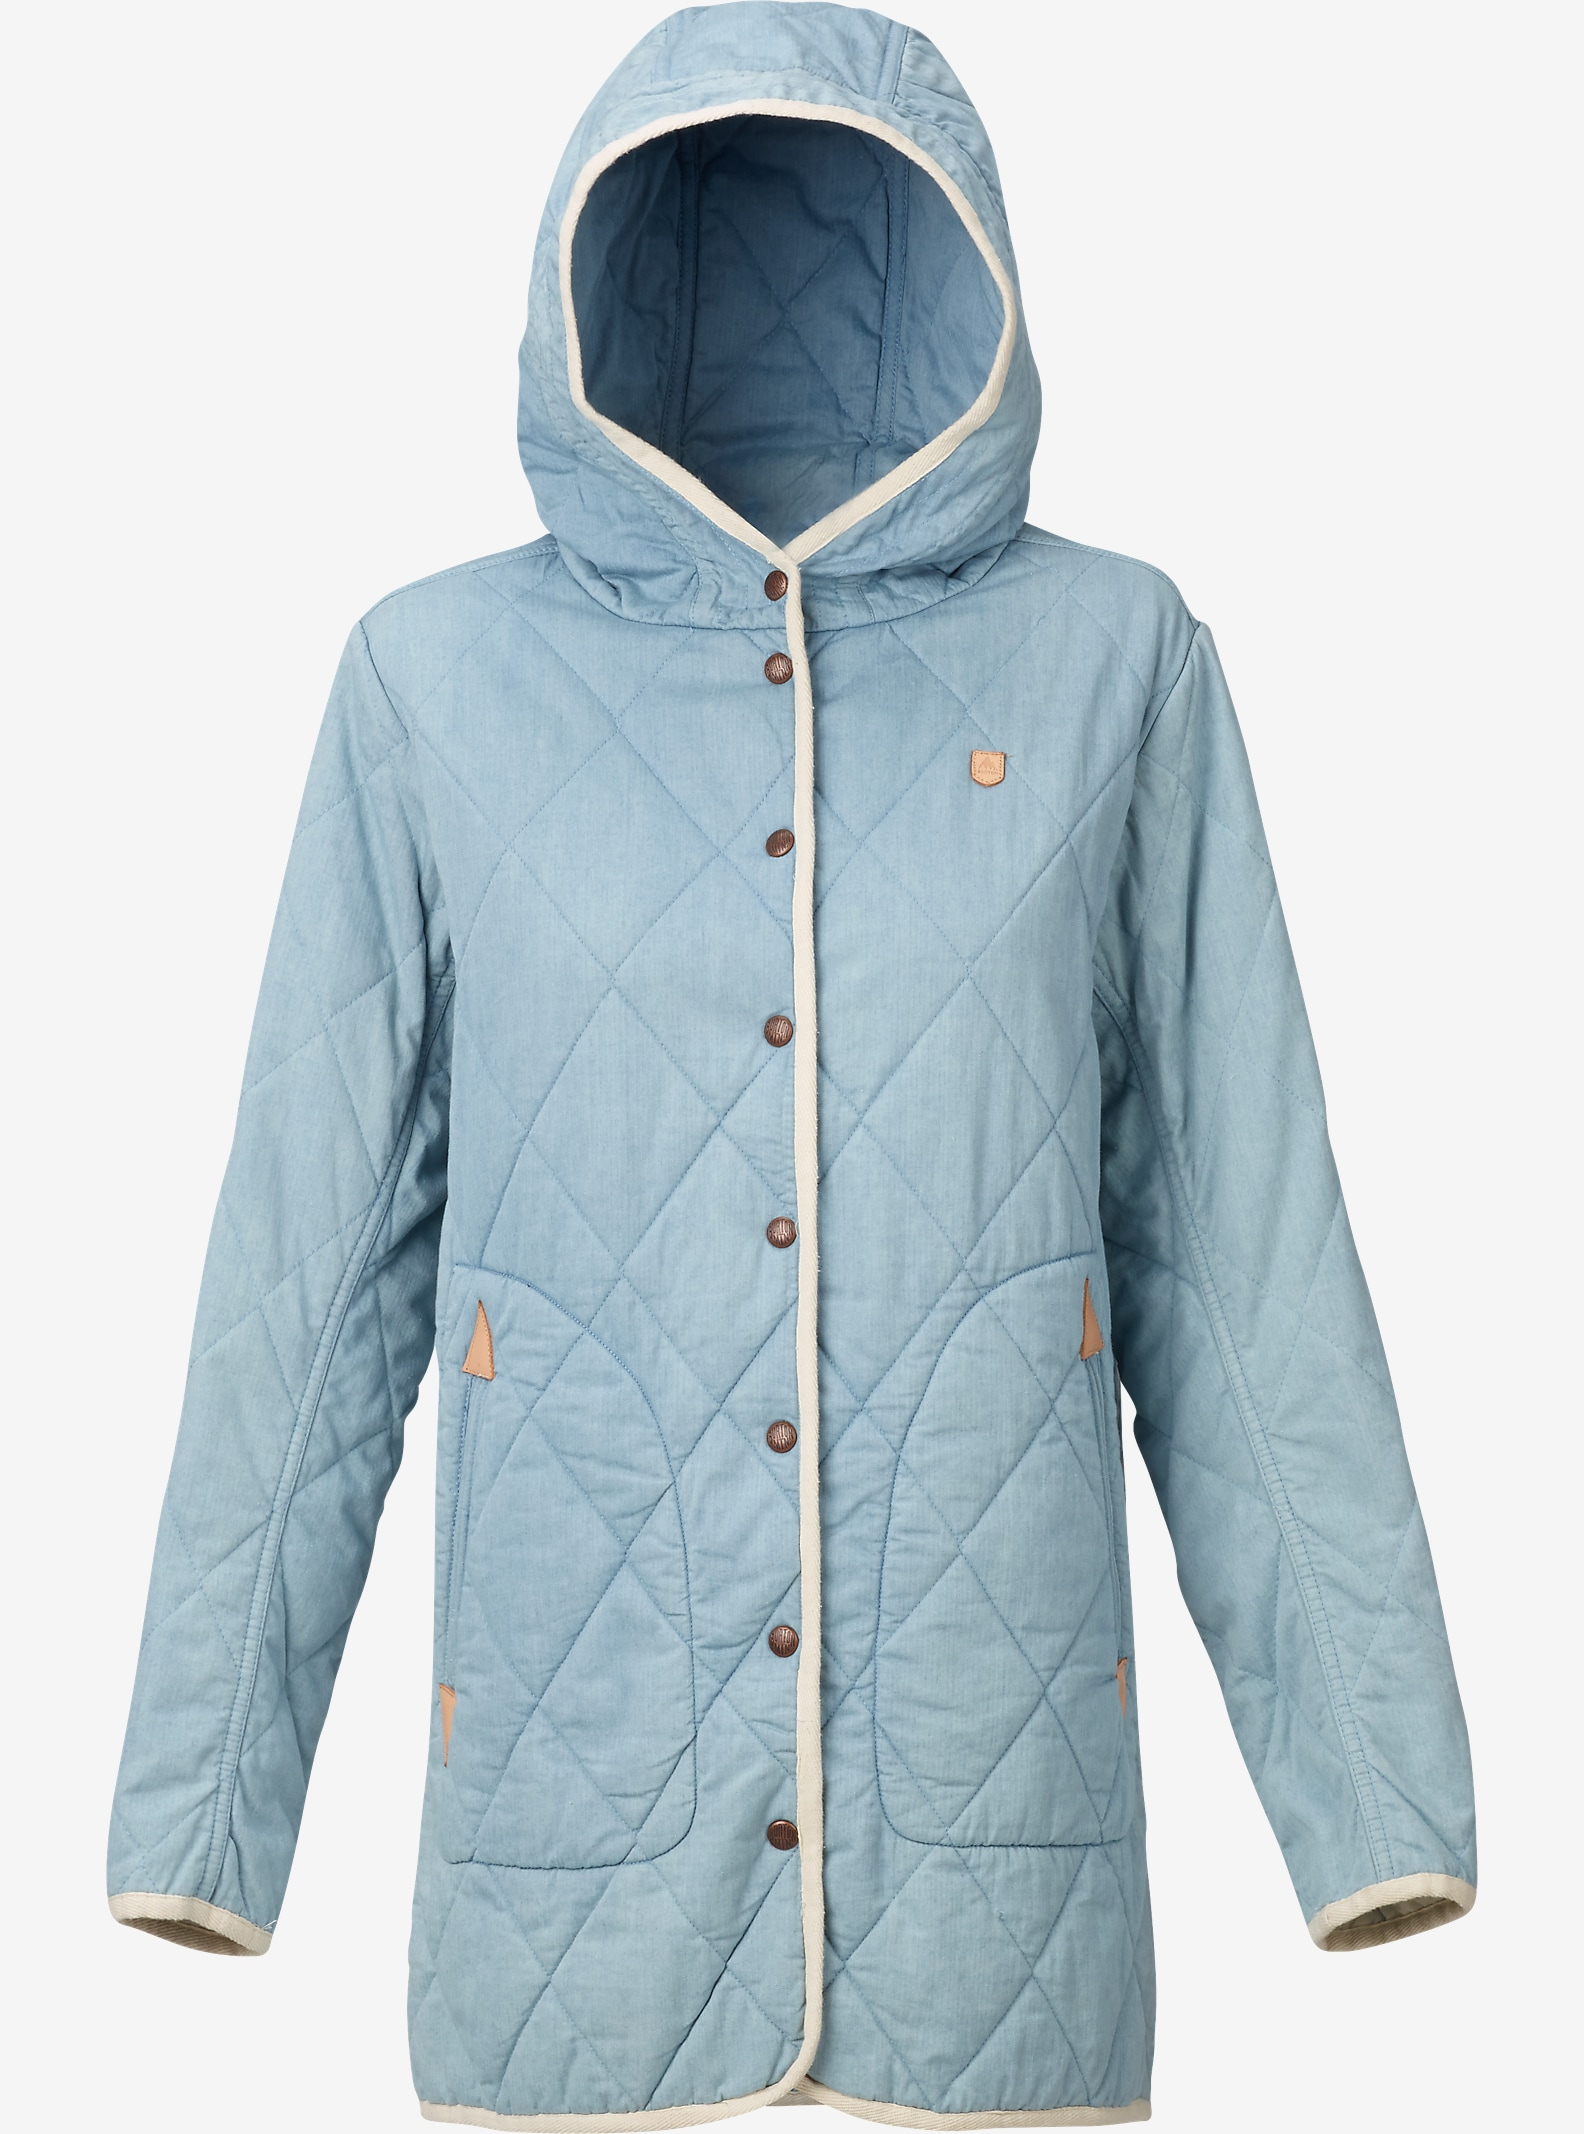 Burton Gemmi Jacket shown in Indigo Herringbone